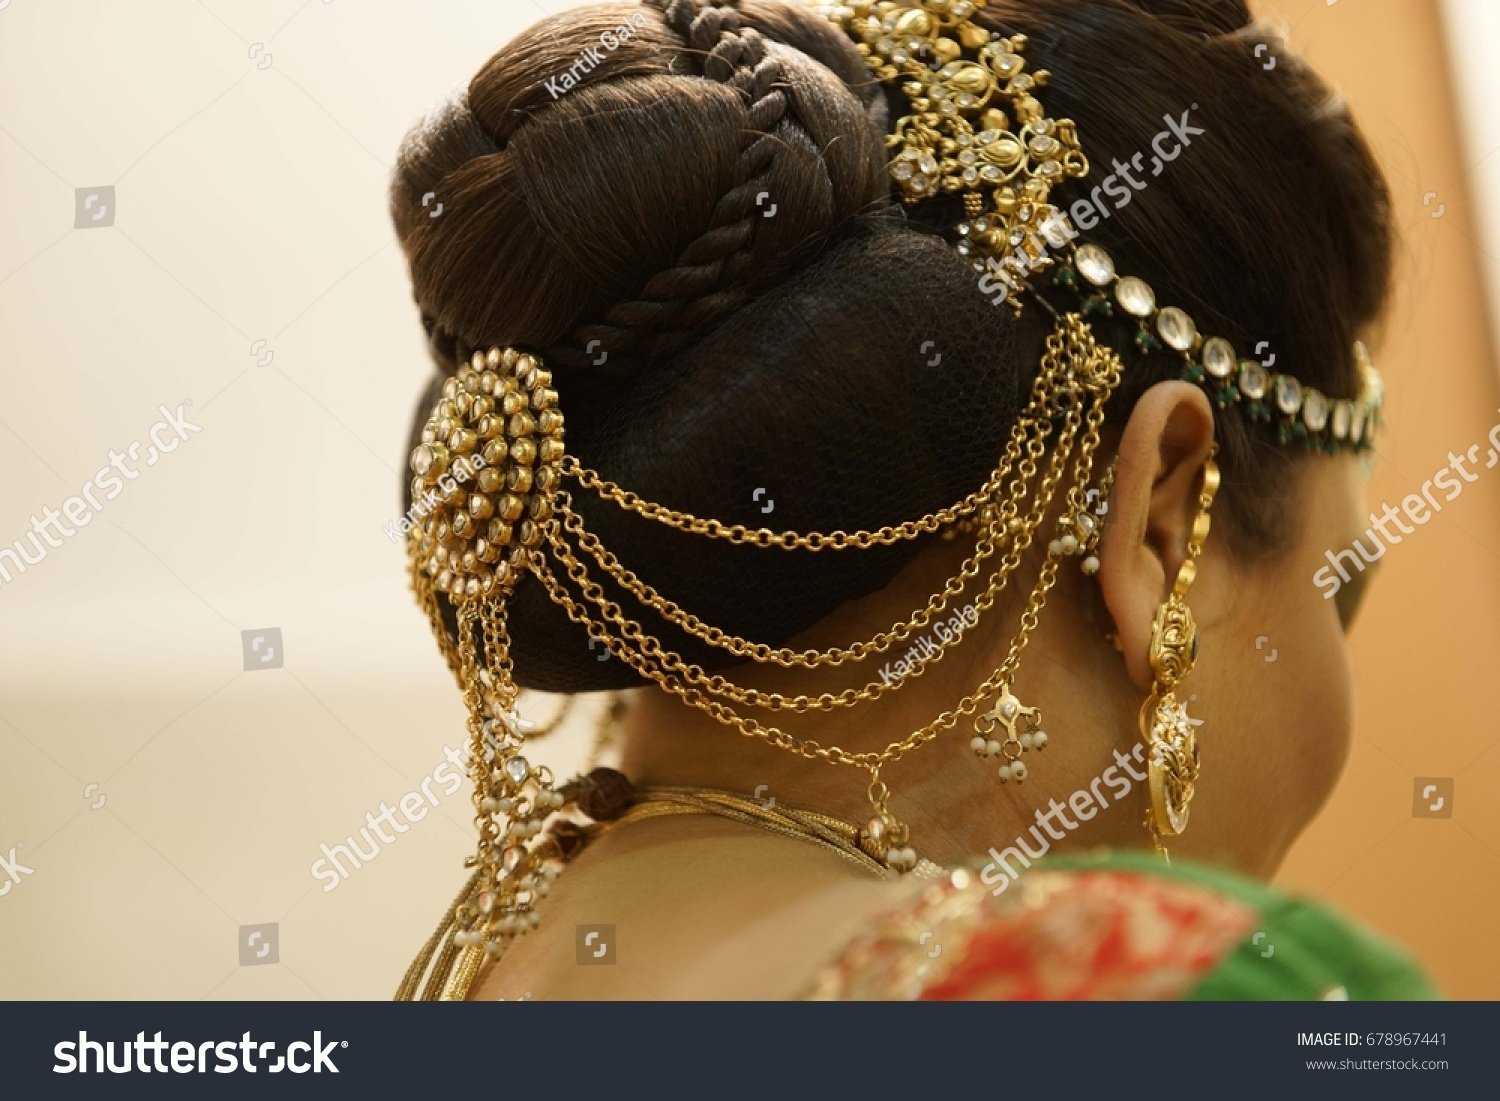 Indian Wedding Girl Hair Style Indian Stock Photo Edit Now 678967441